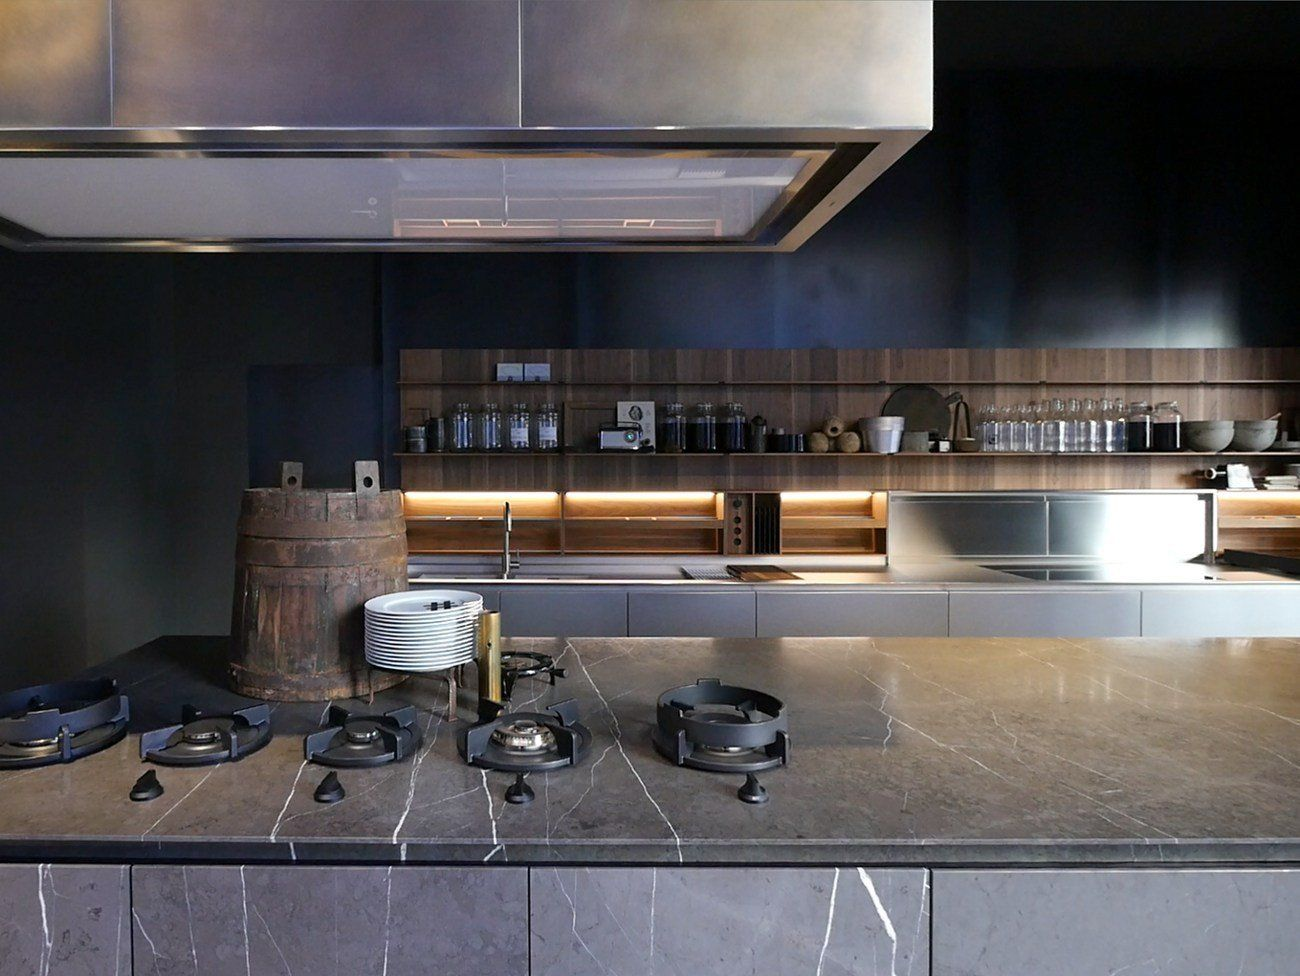 Code, the new, totally customized product by Piero Lissoni for Boffi Kitchen